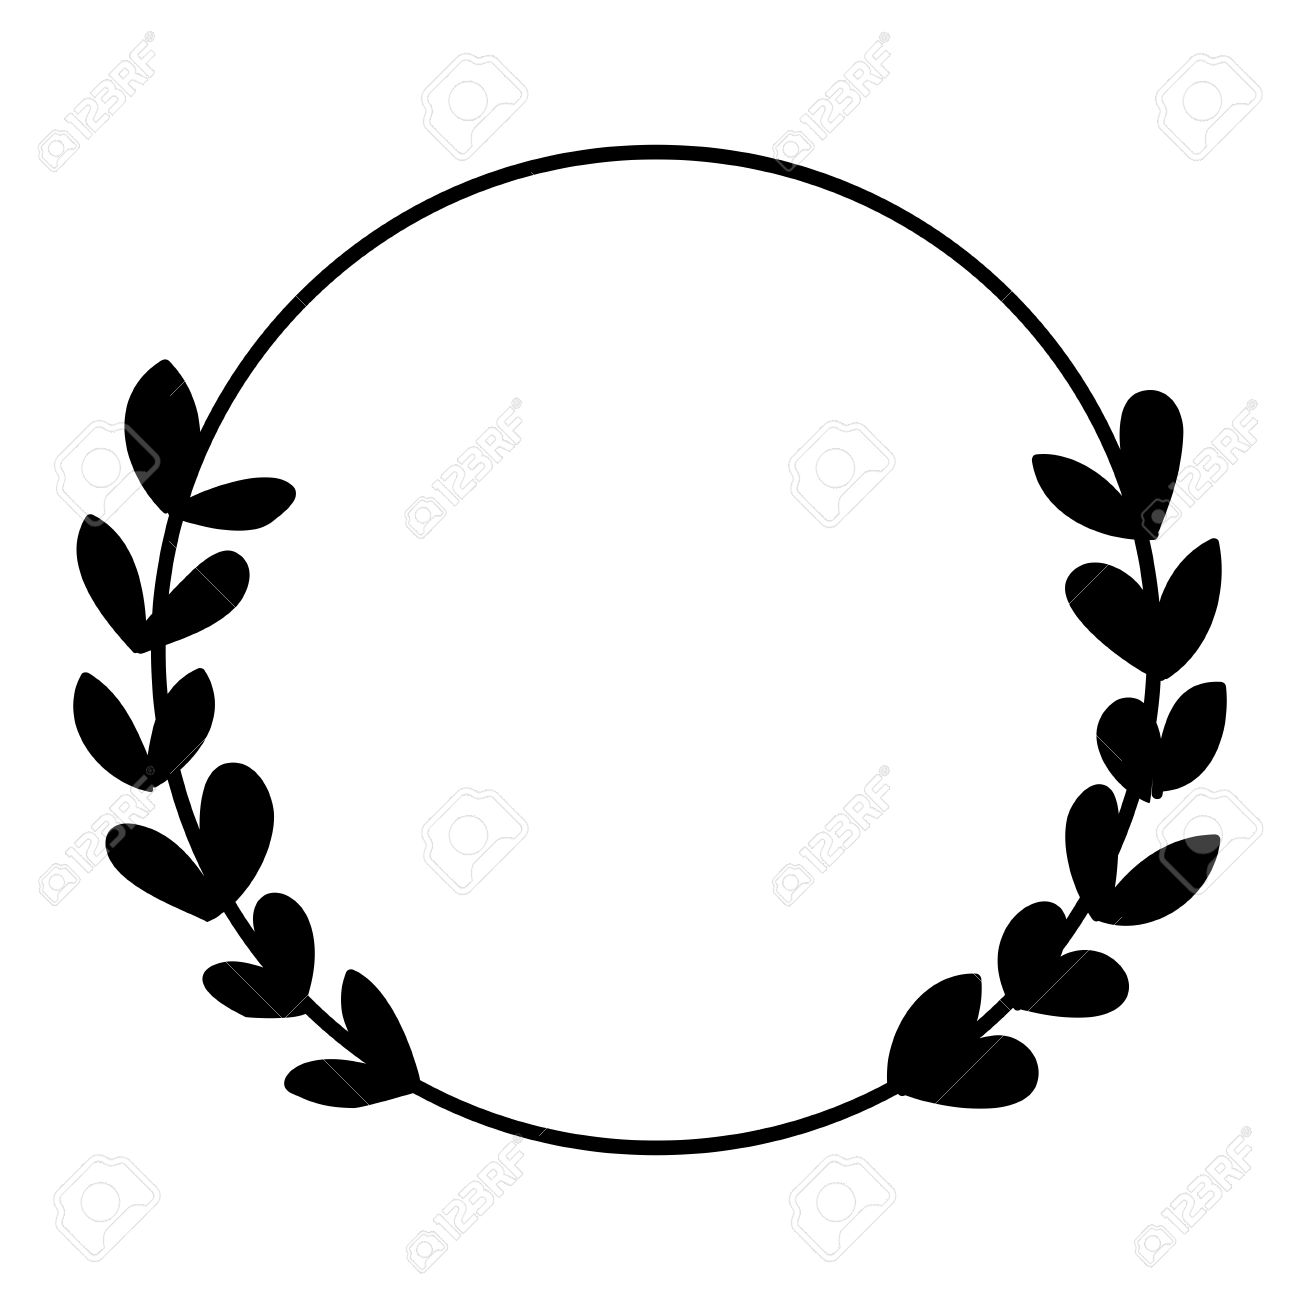 Laurel wreath black and white photo vector frame isolated on...